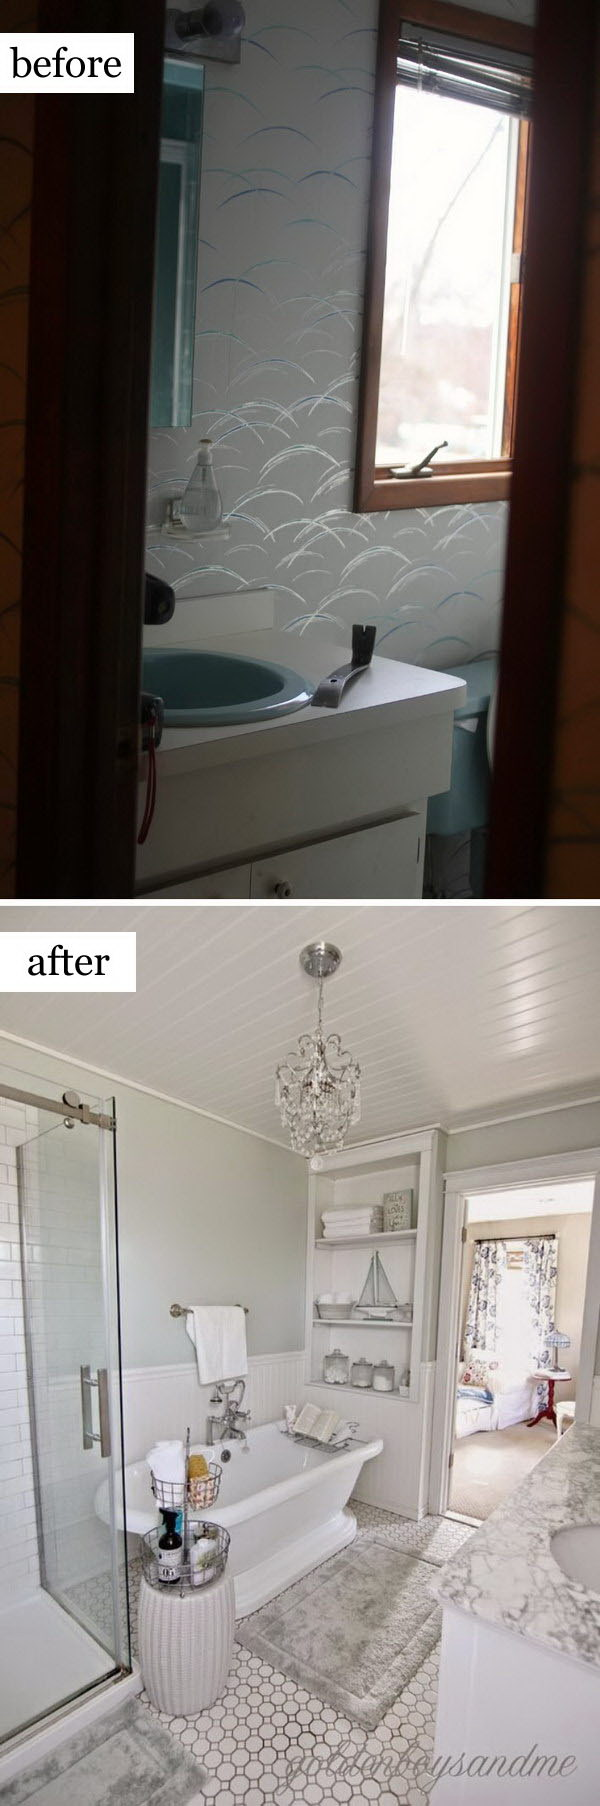 Before and After Makeovers: 20+ Most Beautiful Bathroom ... on Beautiful Bathroom Ideas  id=78554